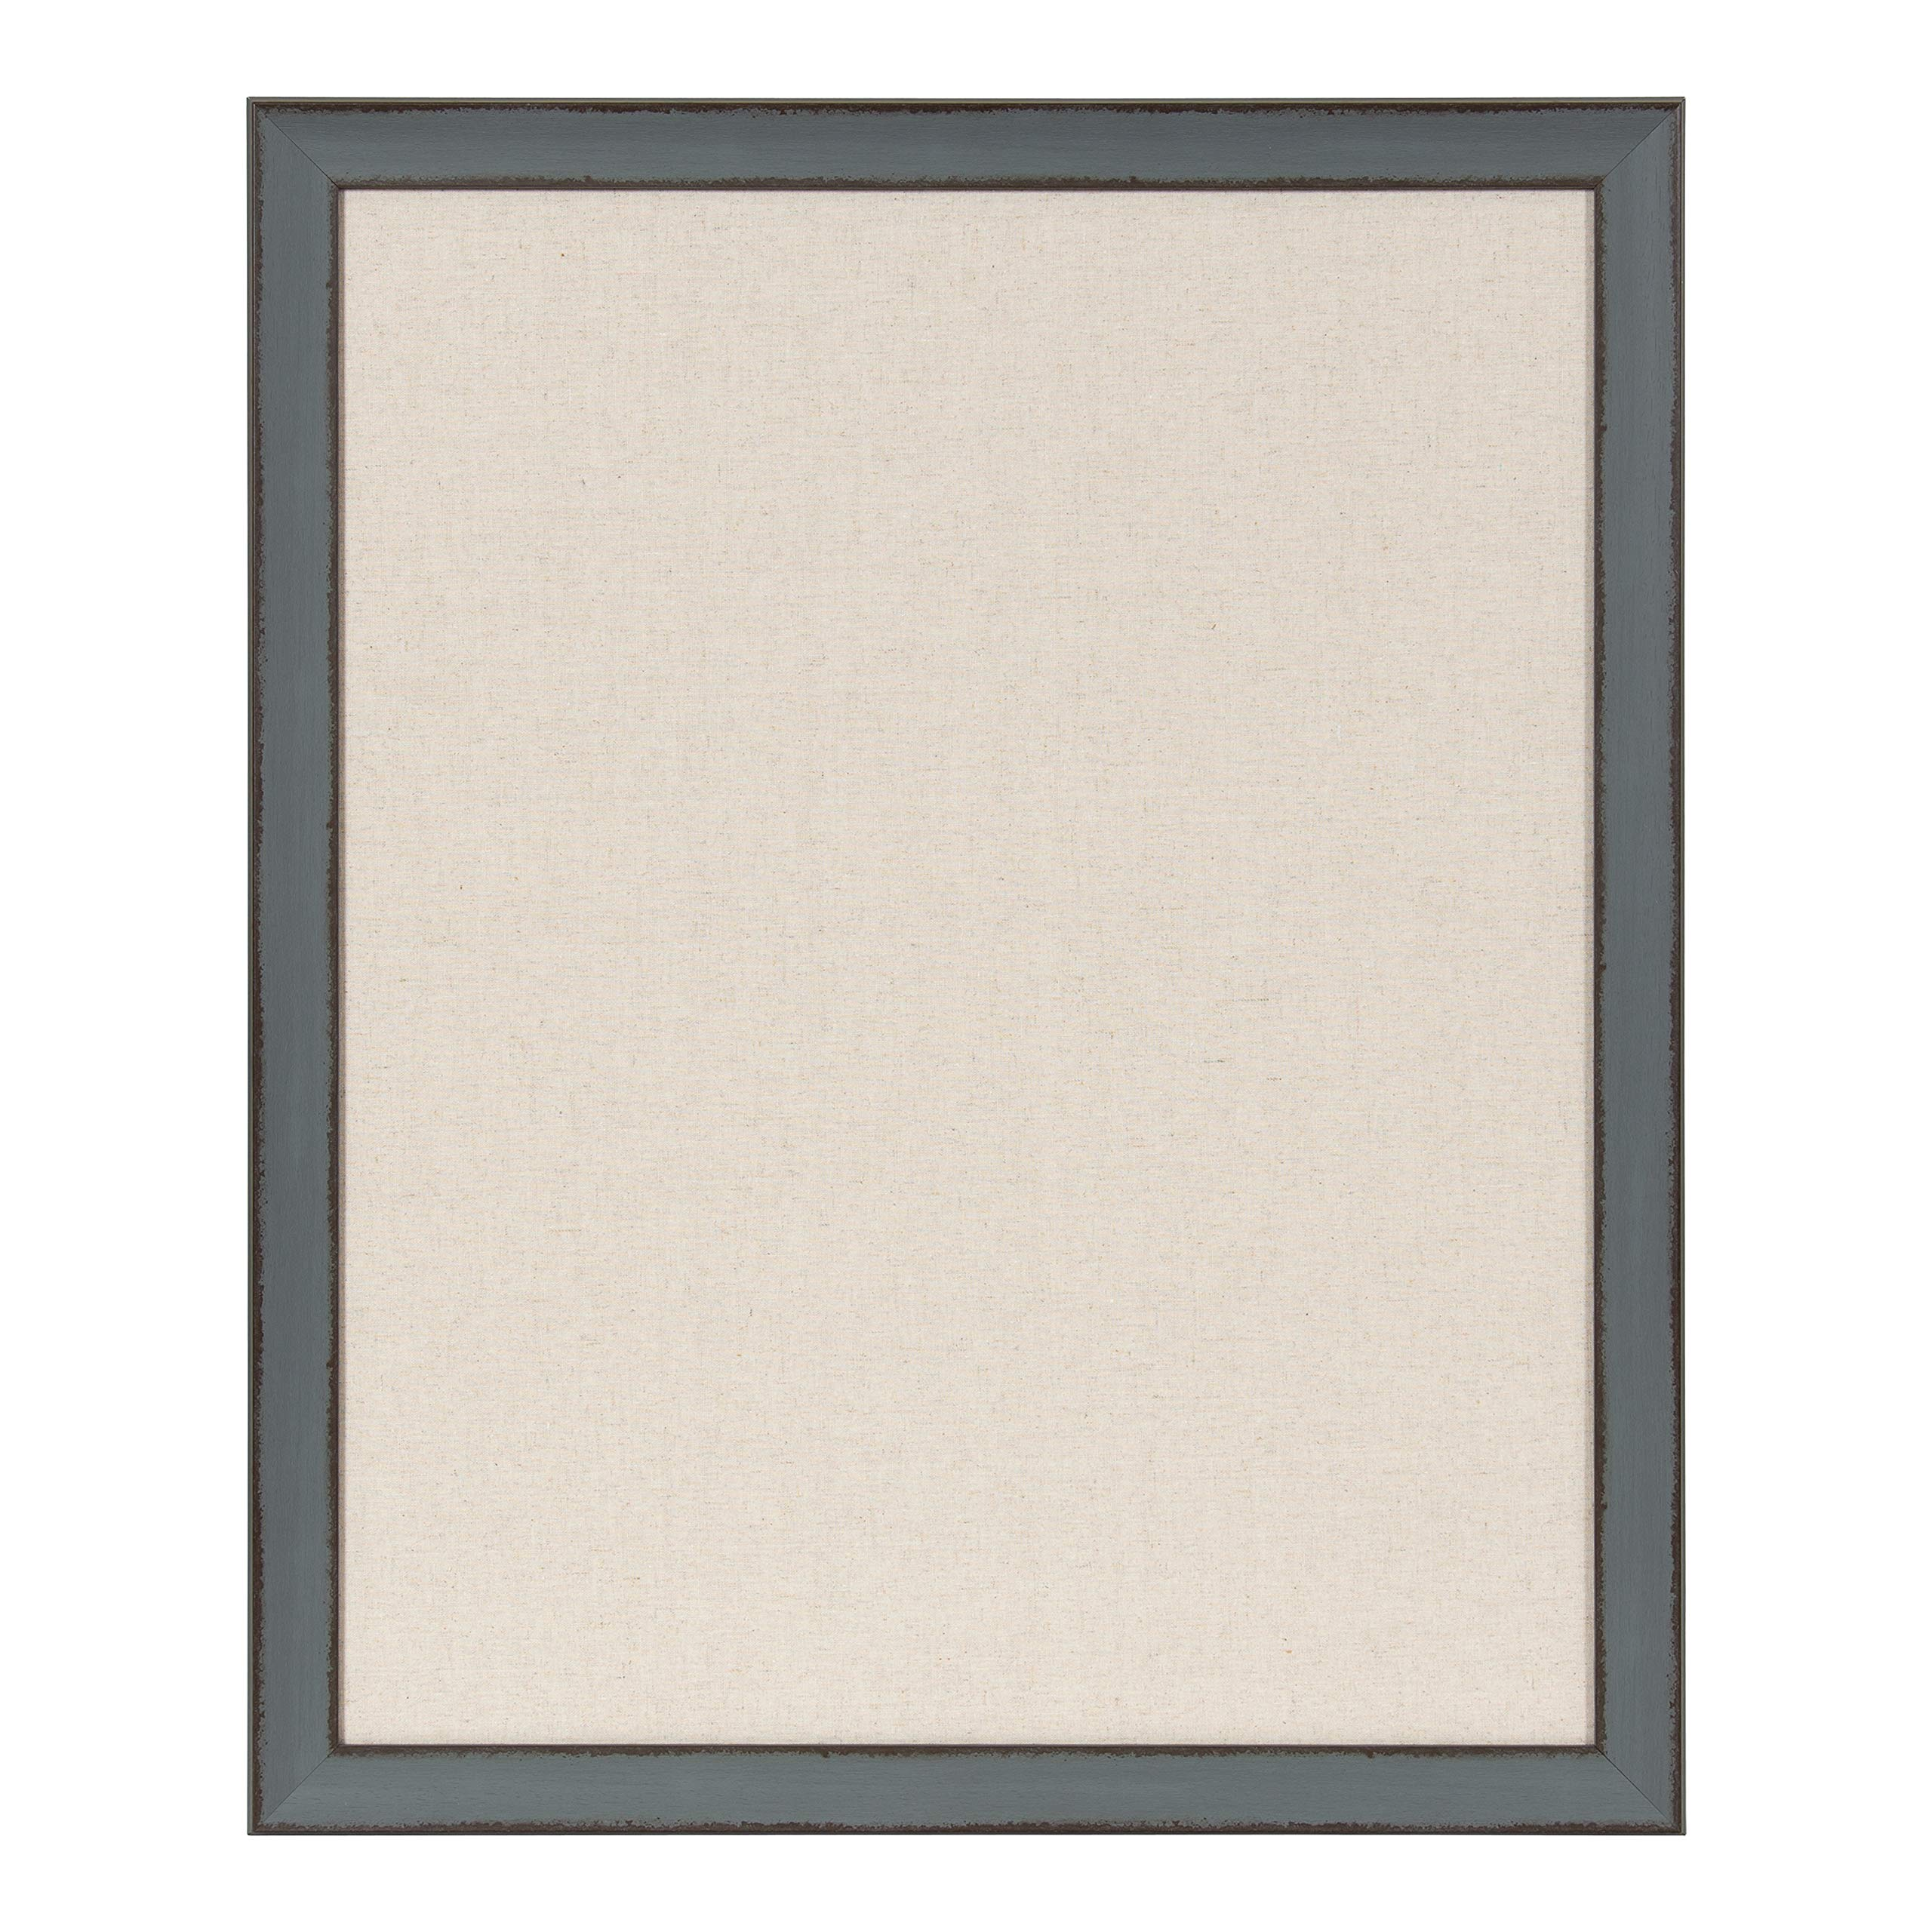 Kate and Laurel Kenwick Framed Linen Fabric Pinboard, 27x33, Gray Green by Kate and Laurel (Image #1)